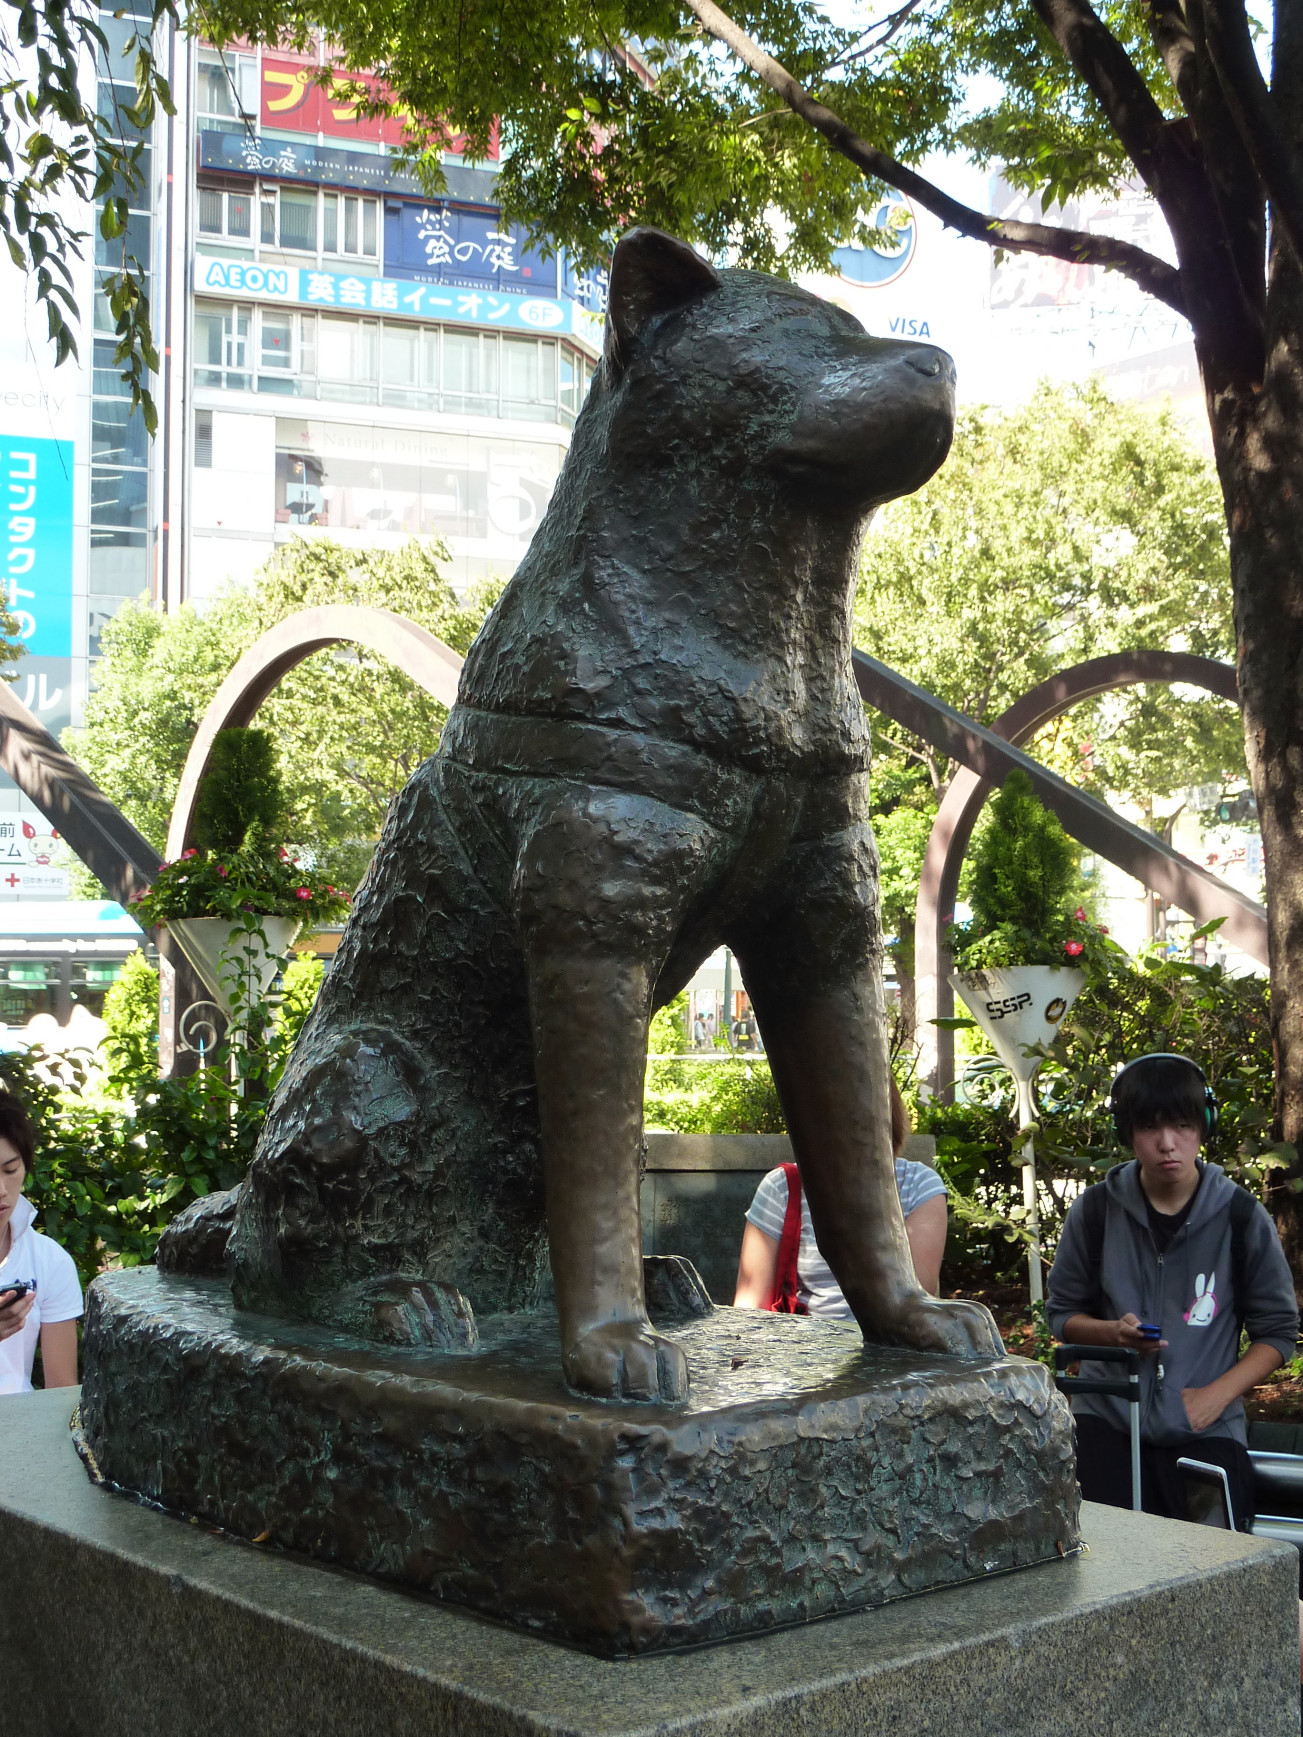 Famed dog Hachiko's home city wants loan of much-loved statue | The ...